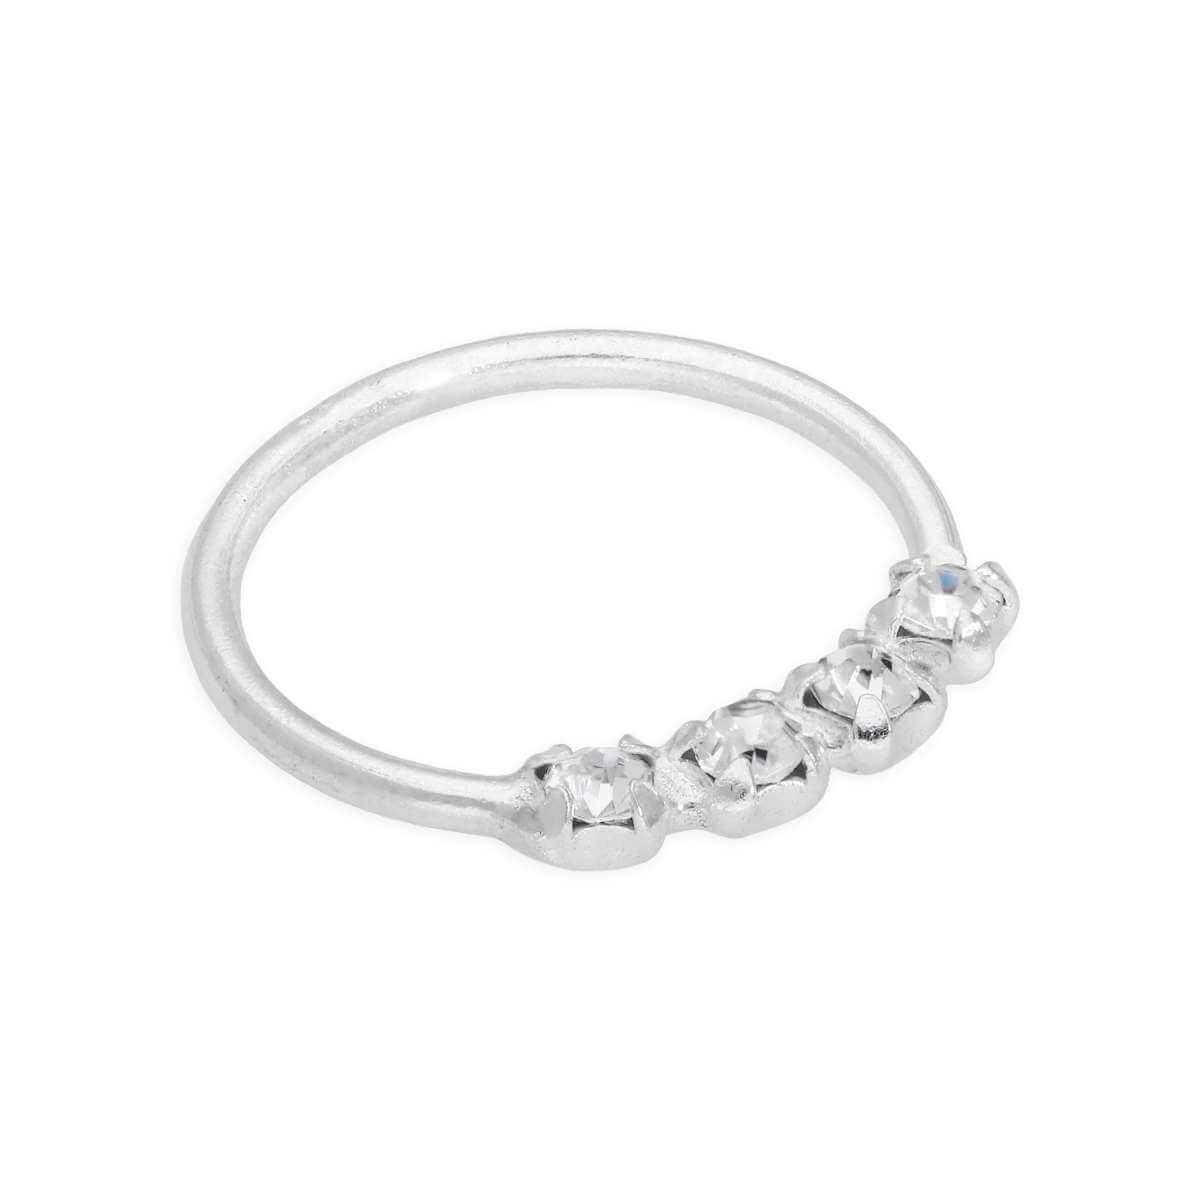 Sterling Silver 11mm Nose Ring with 4 Clear CZ Crystals 20Ga